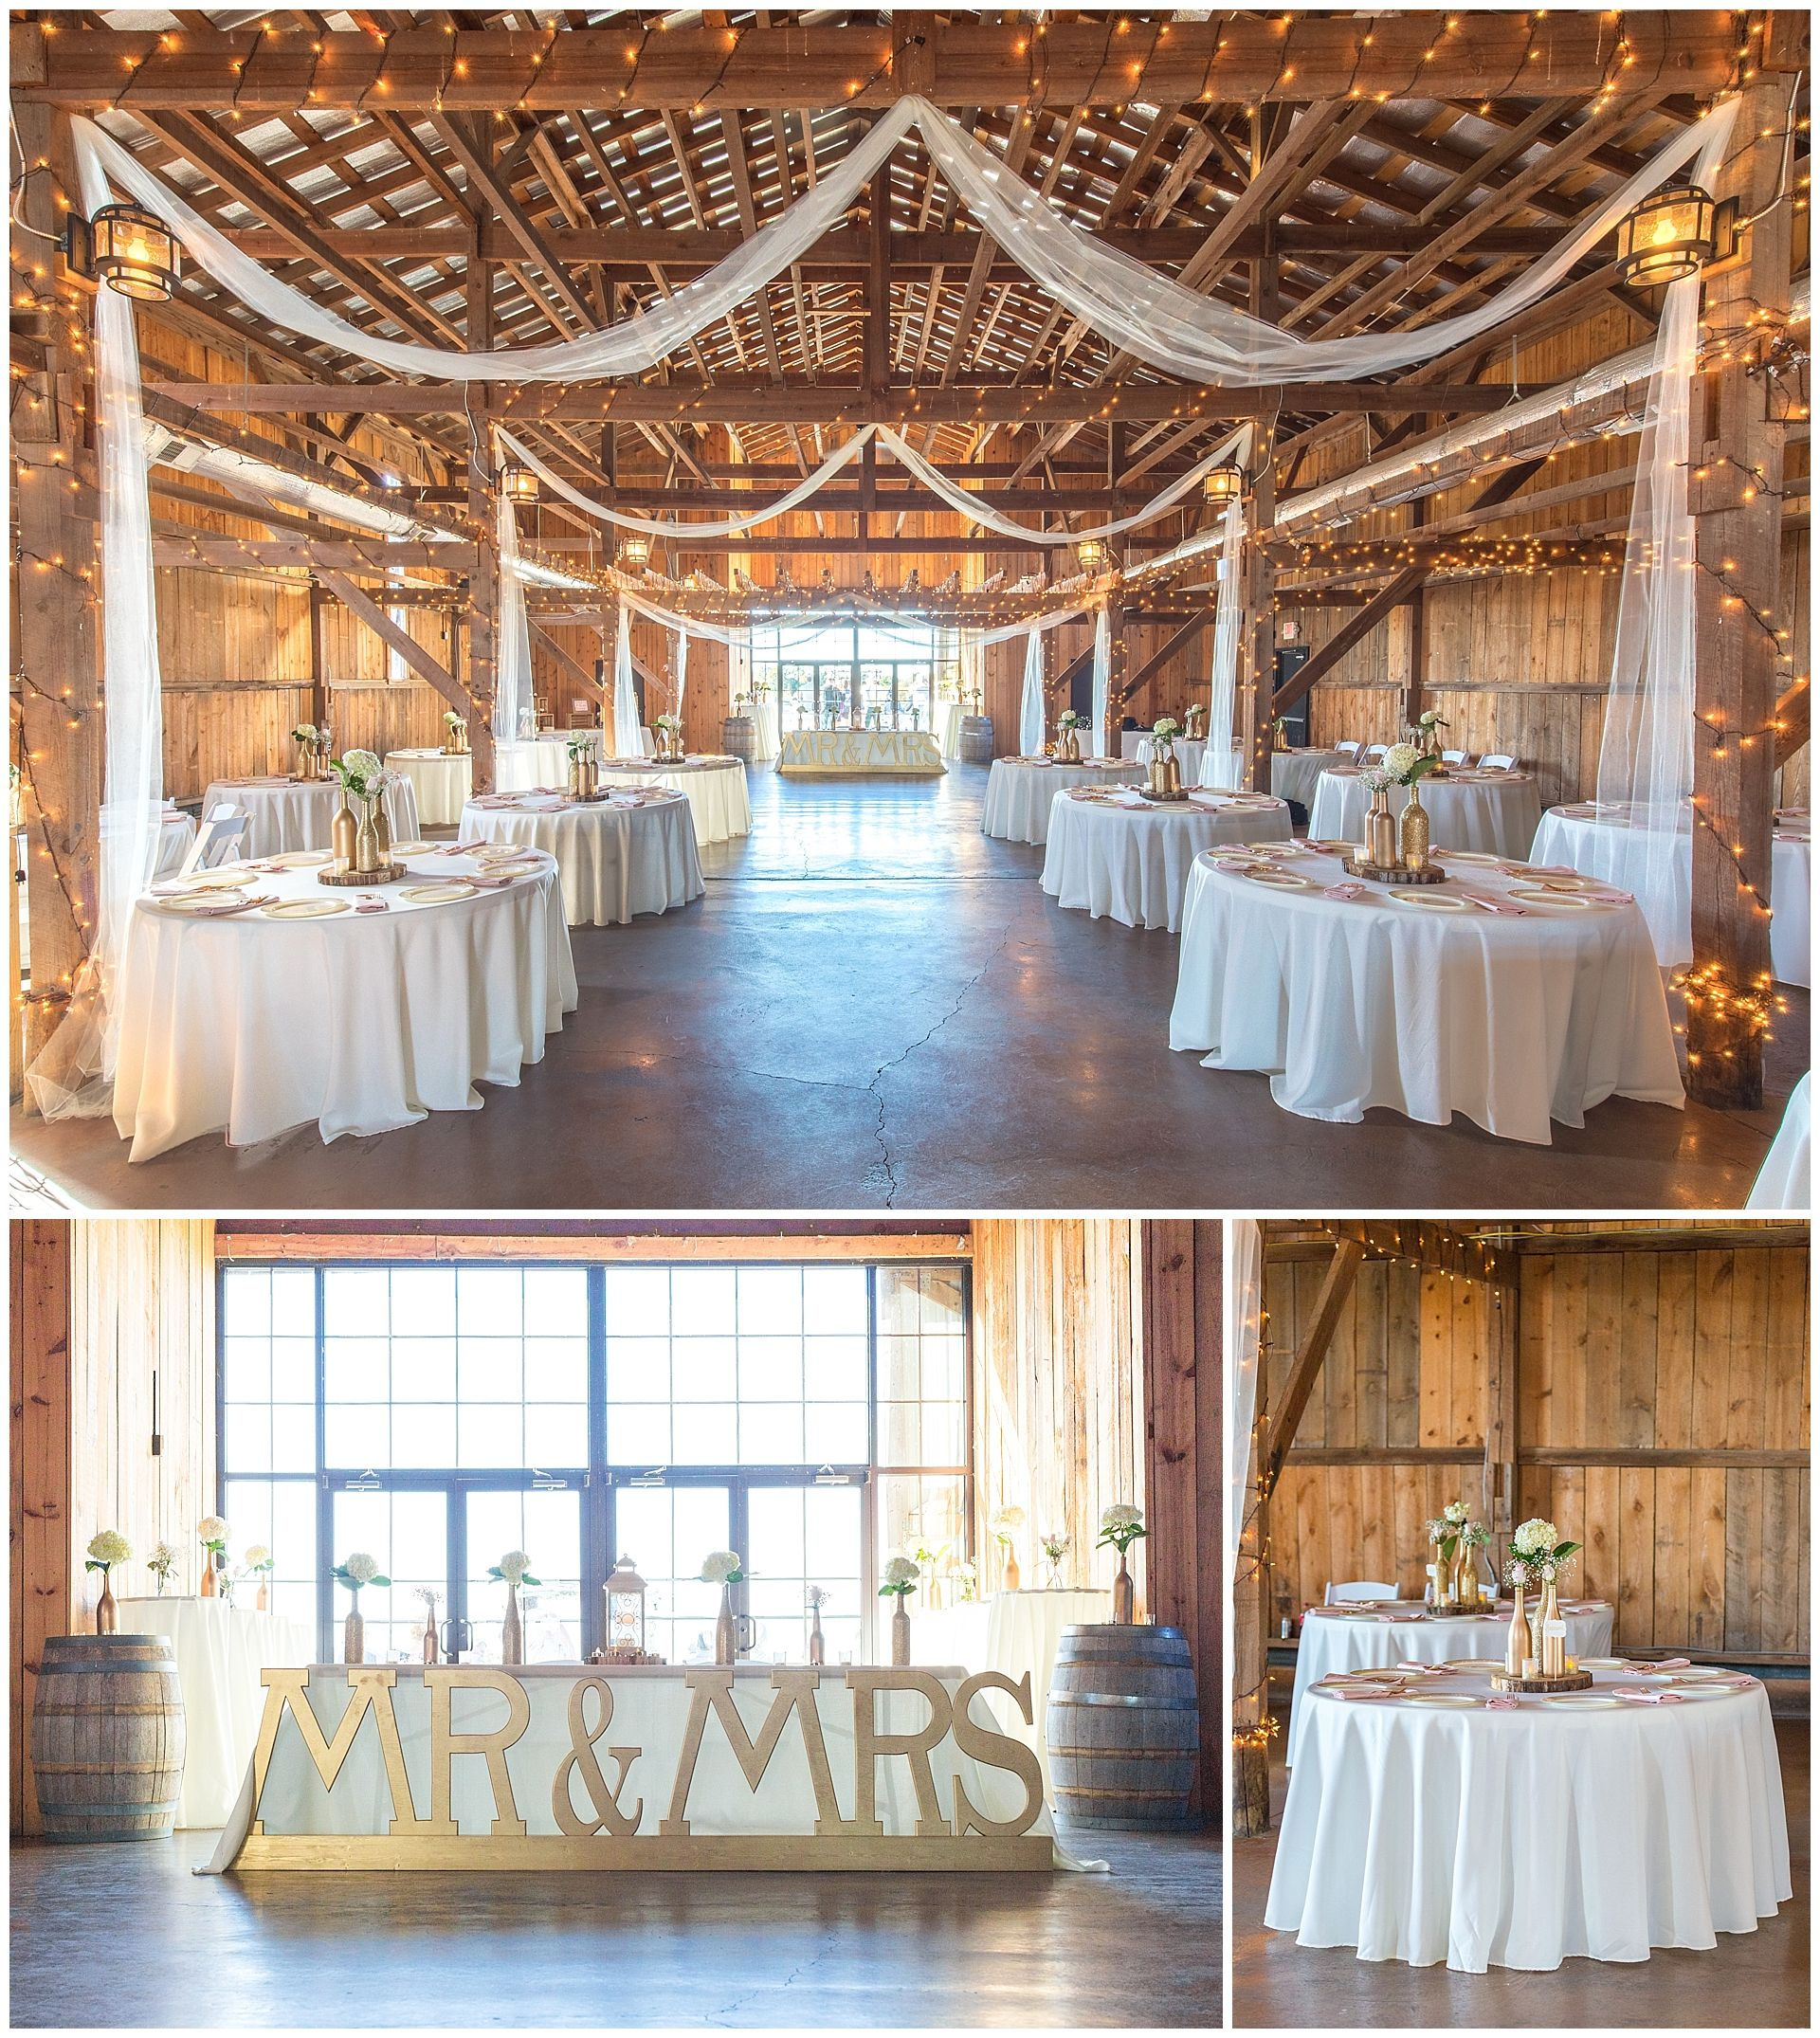 Inexpensive Wedding Venues: Talon Winery Weddings And Events Based In Lexington